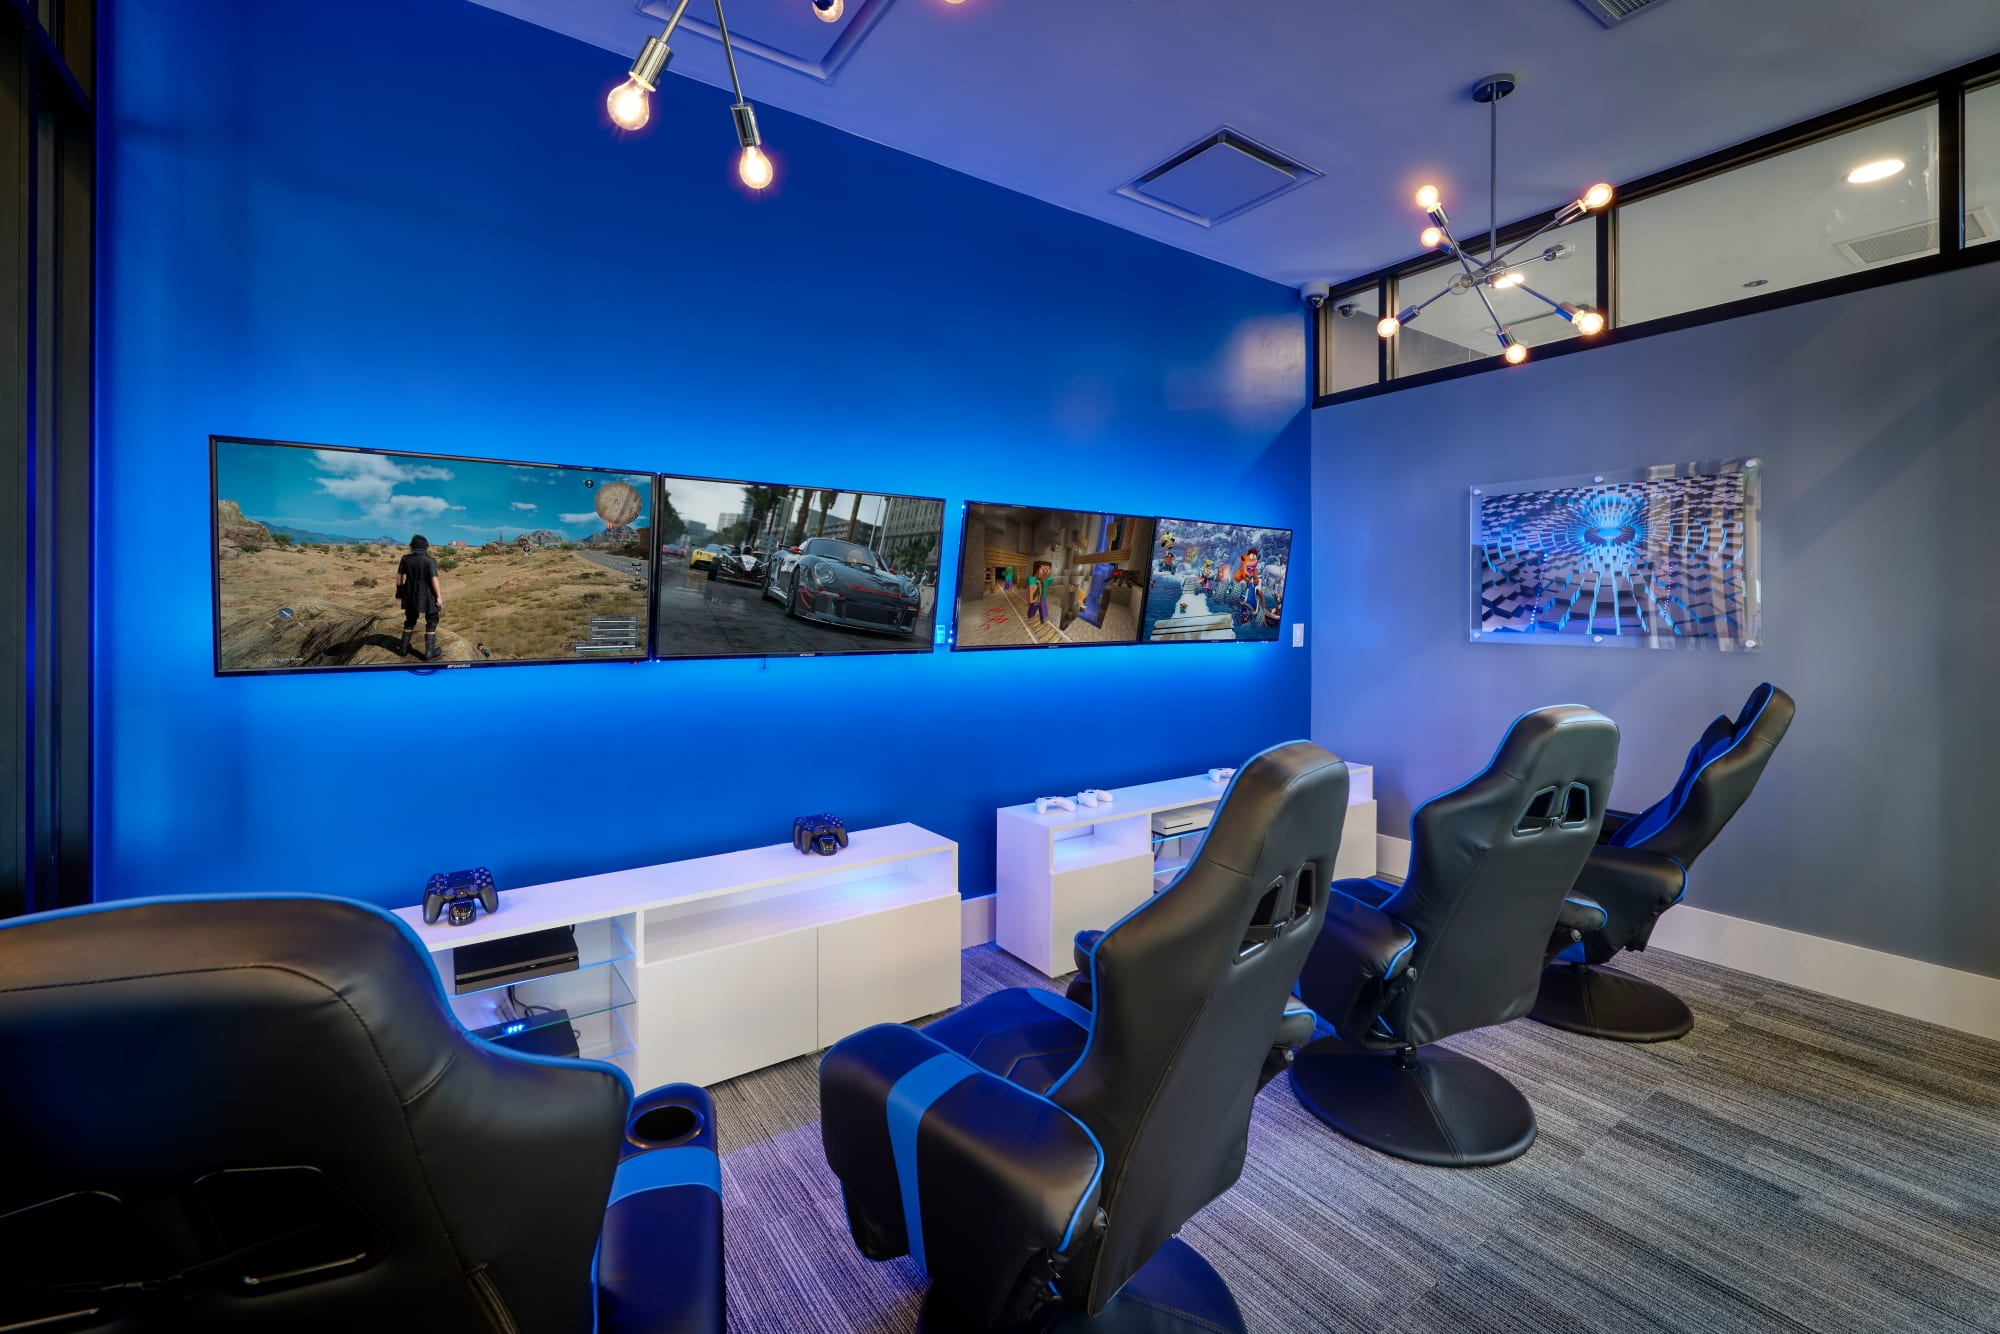 The video room, with consoles and gaming chairs, at Strata Apartments in Denver, Colorado